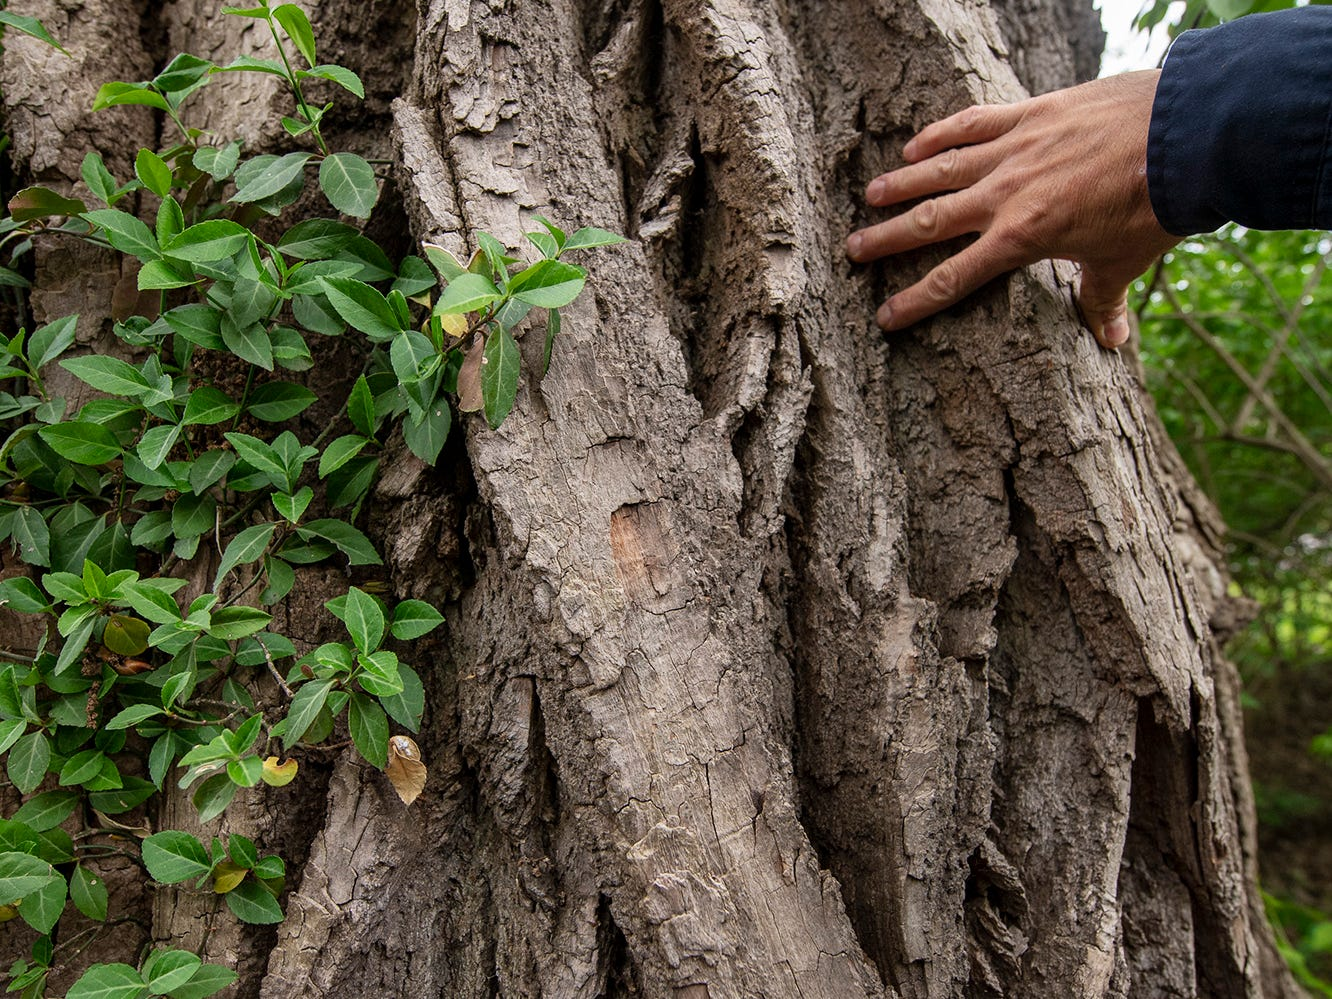 Matt Kern, a forester with the state department of conservation and natural resources, tucks his fingers in the braided bark with grooves at least three inches thick on the trunk of the Cottonwood.